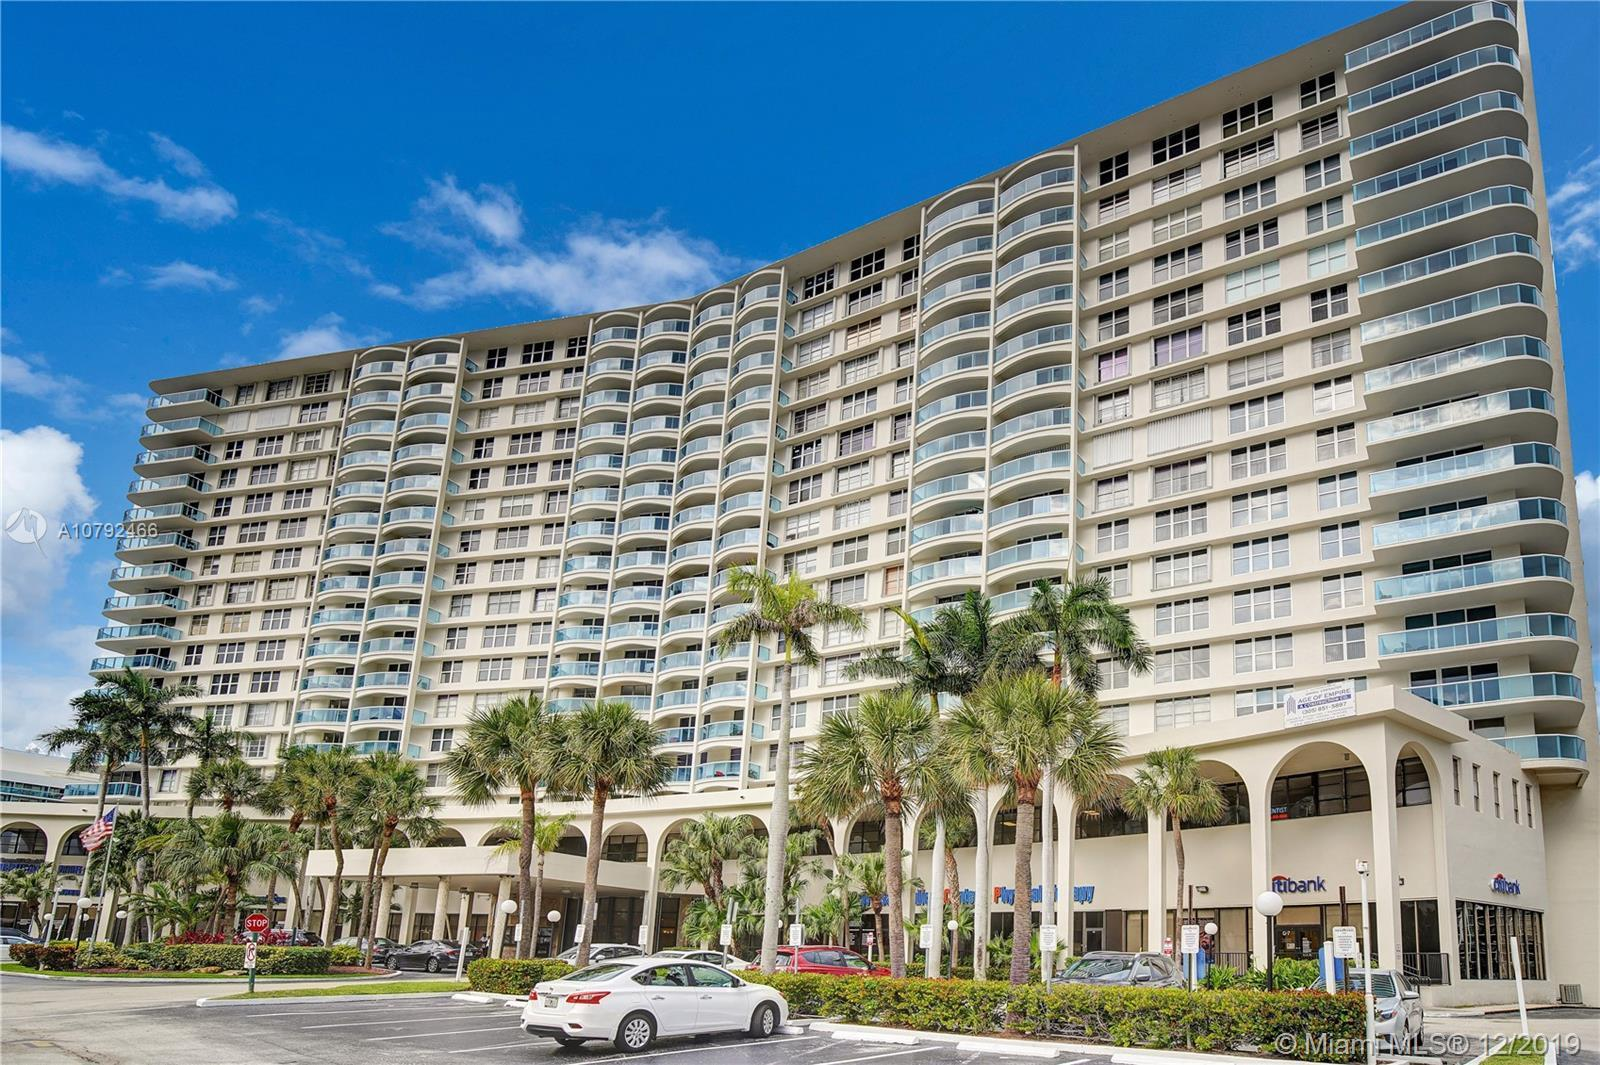 SUPERB AND SPACIOUS CORNER UNIT 3 BEDROOM-2 BATHS WITH BEAUTIFUL AND PEACEFUL INTRACOASTAL VIEW AND